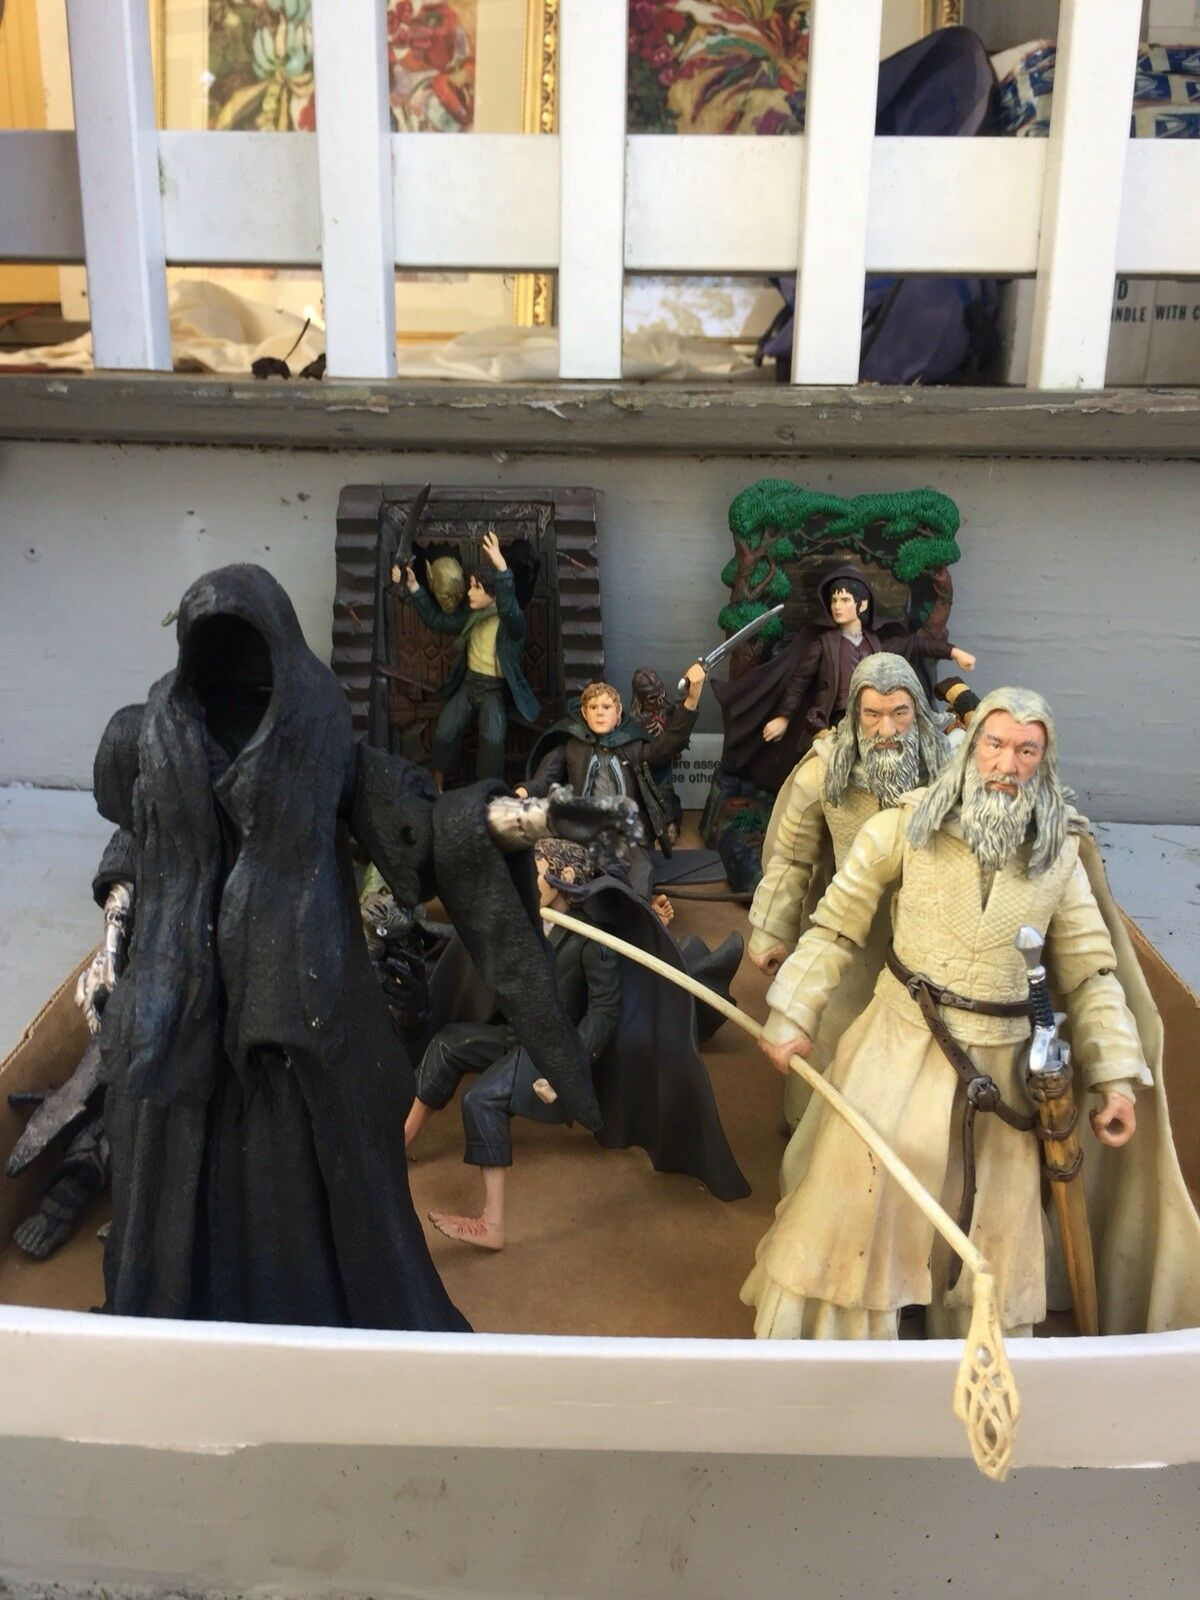 Lot of 10 2001 NLP Marvel Lord Of The Rings LOTR Action Figures & Accesories